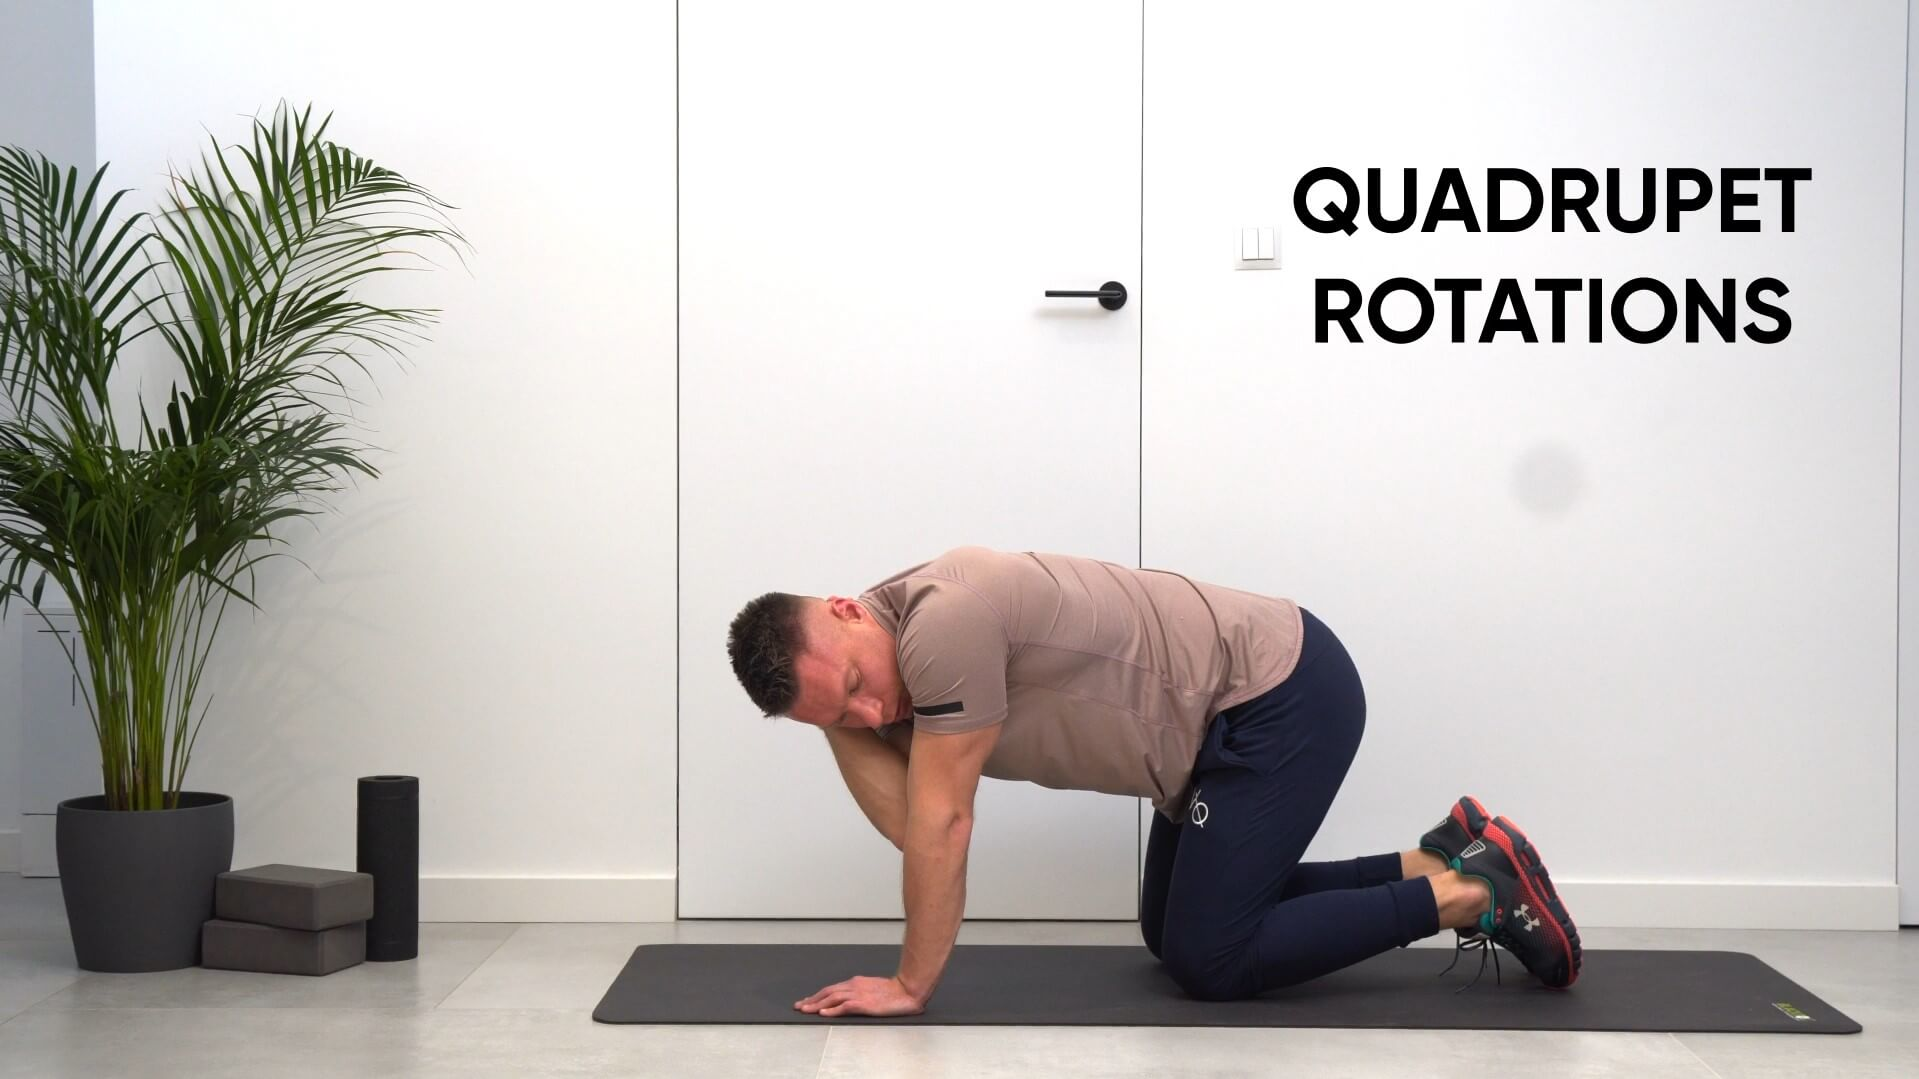 Quadruped rotations